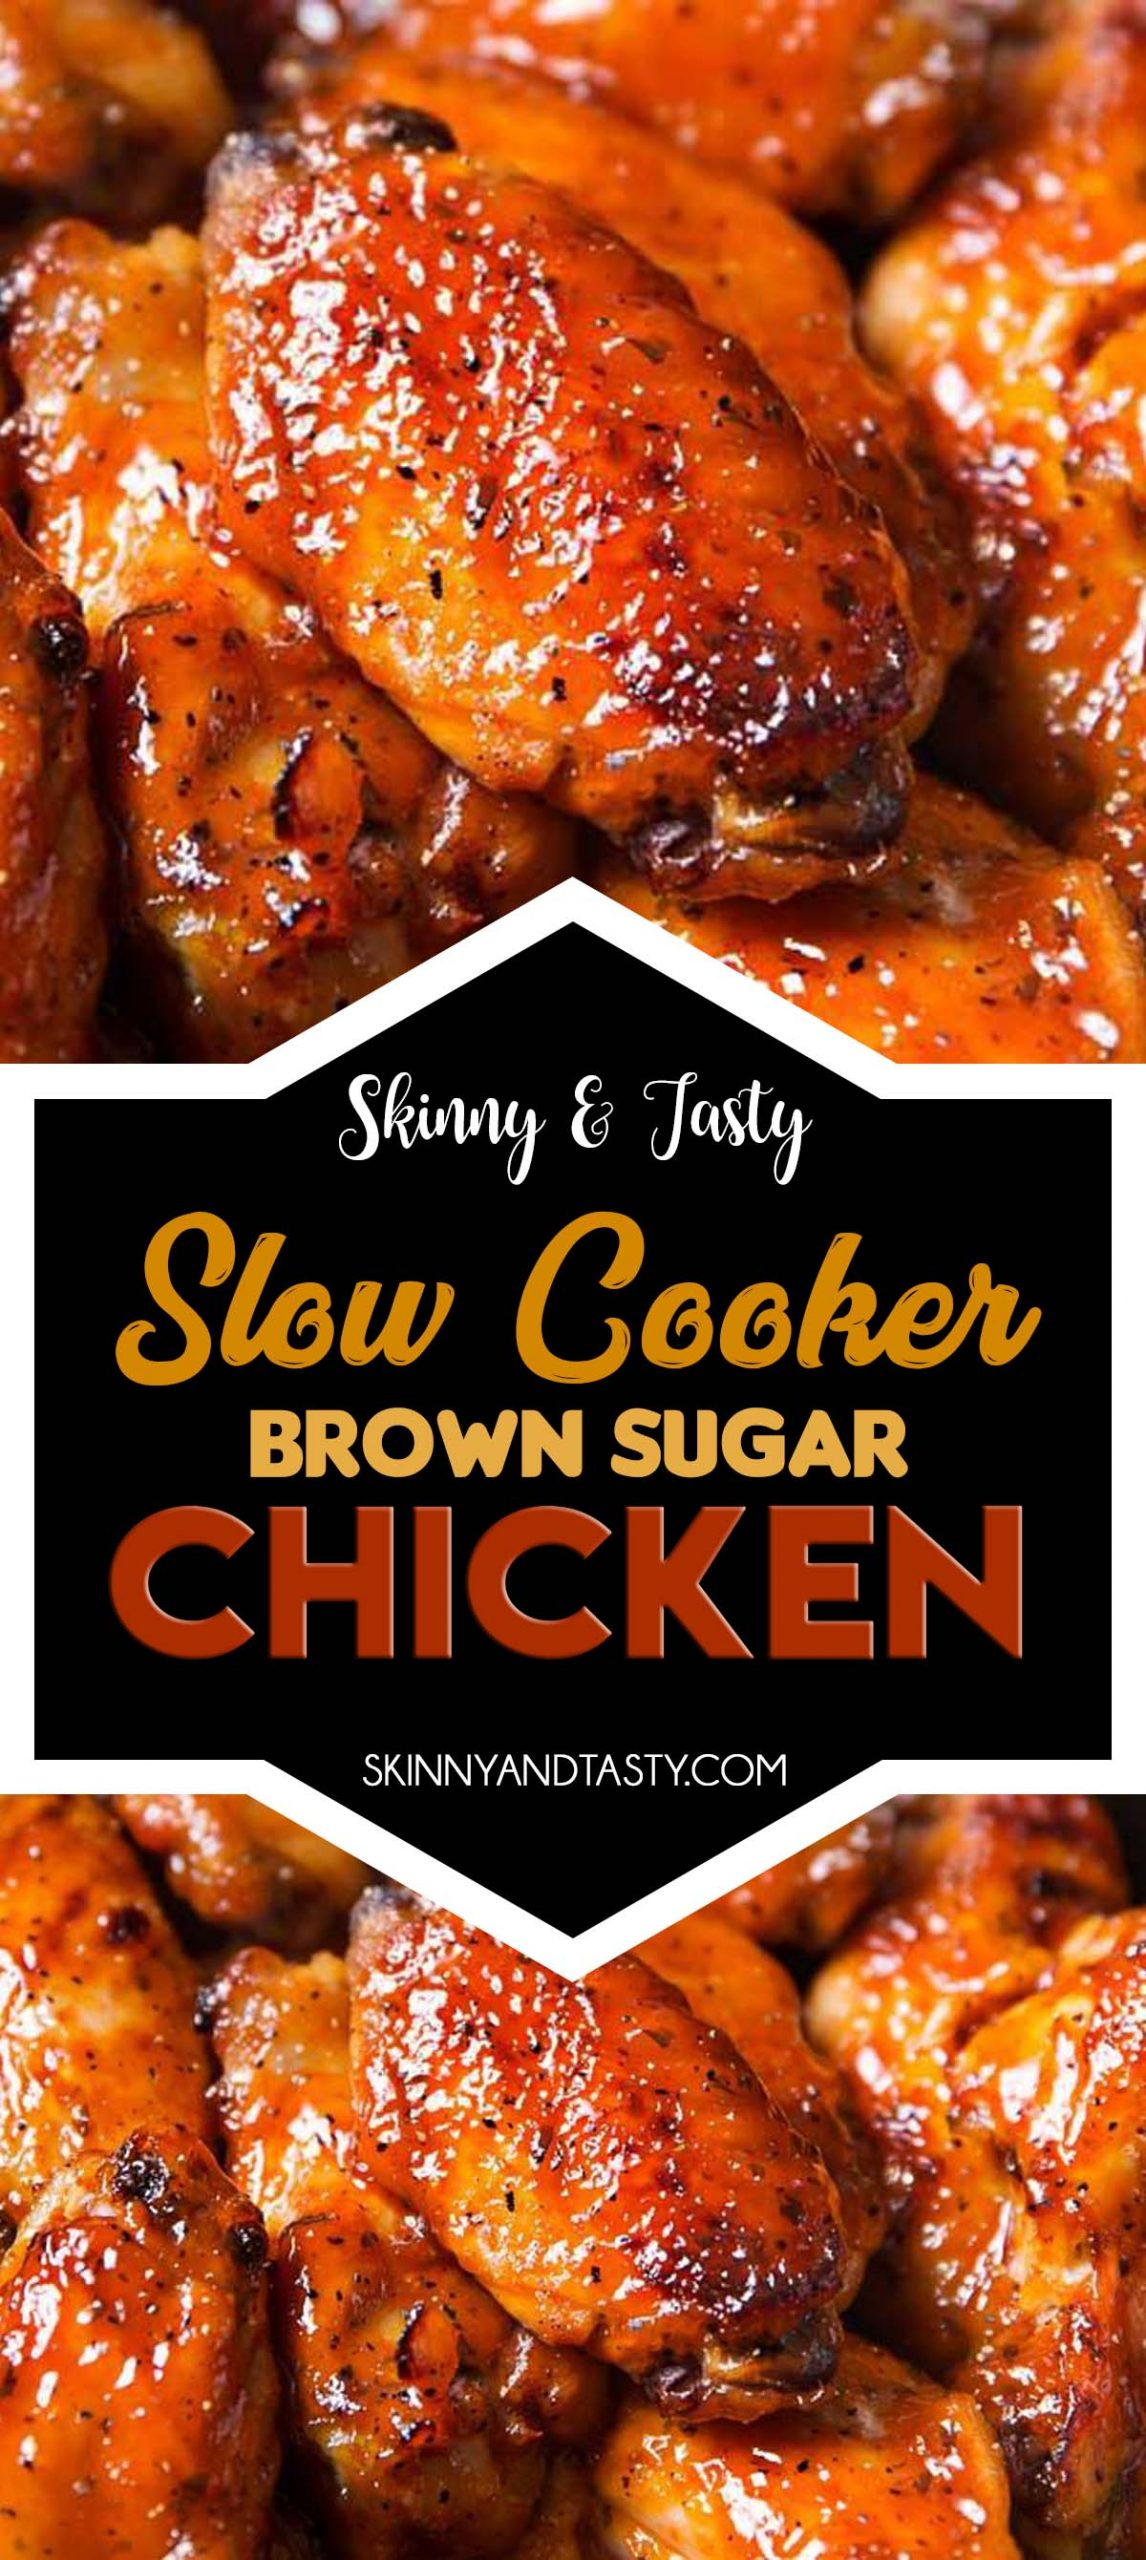 Brown Sugar Chicken Recipe